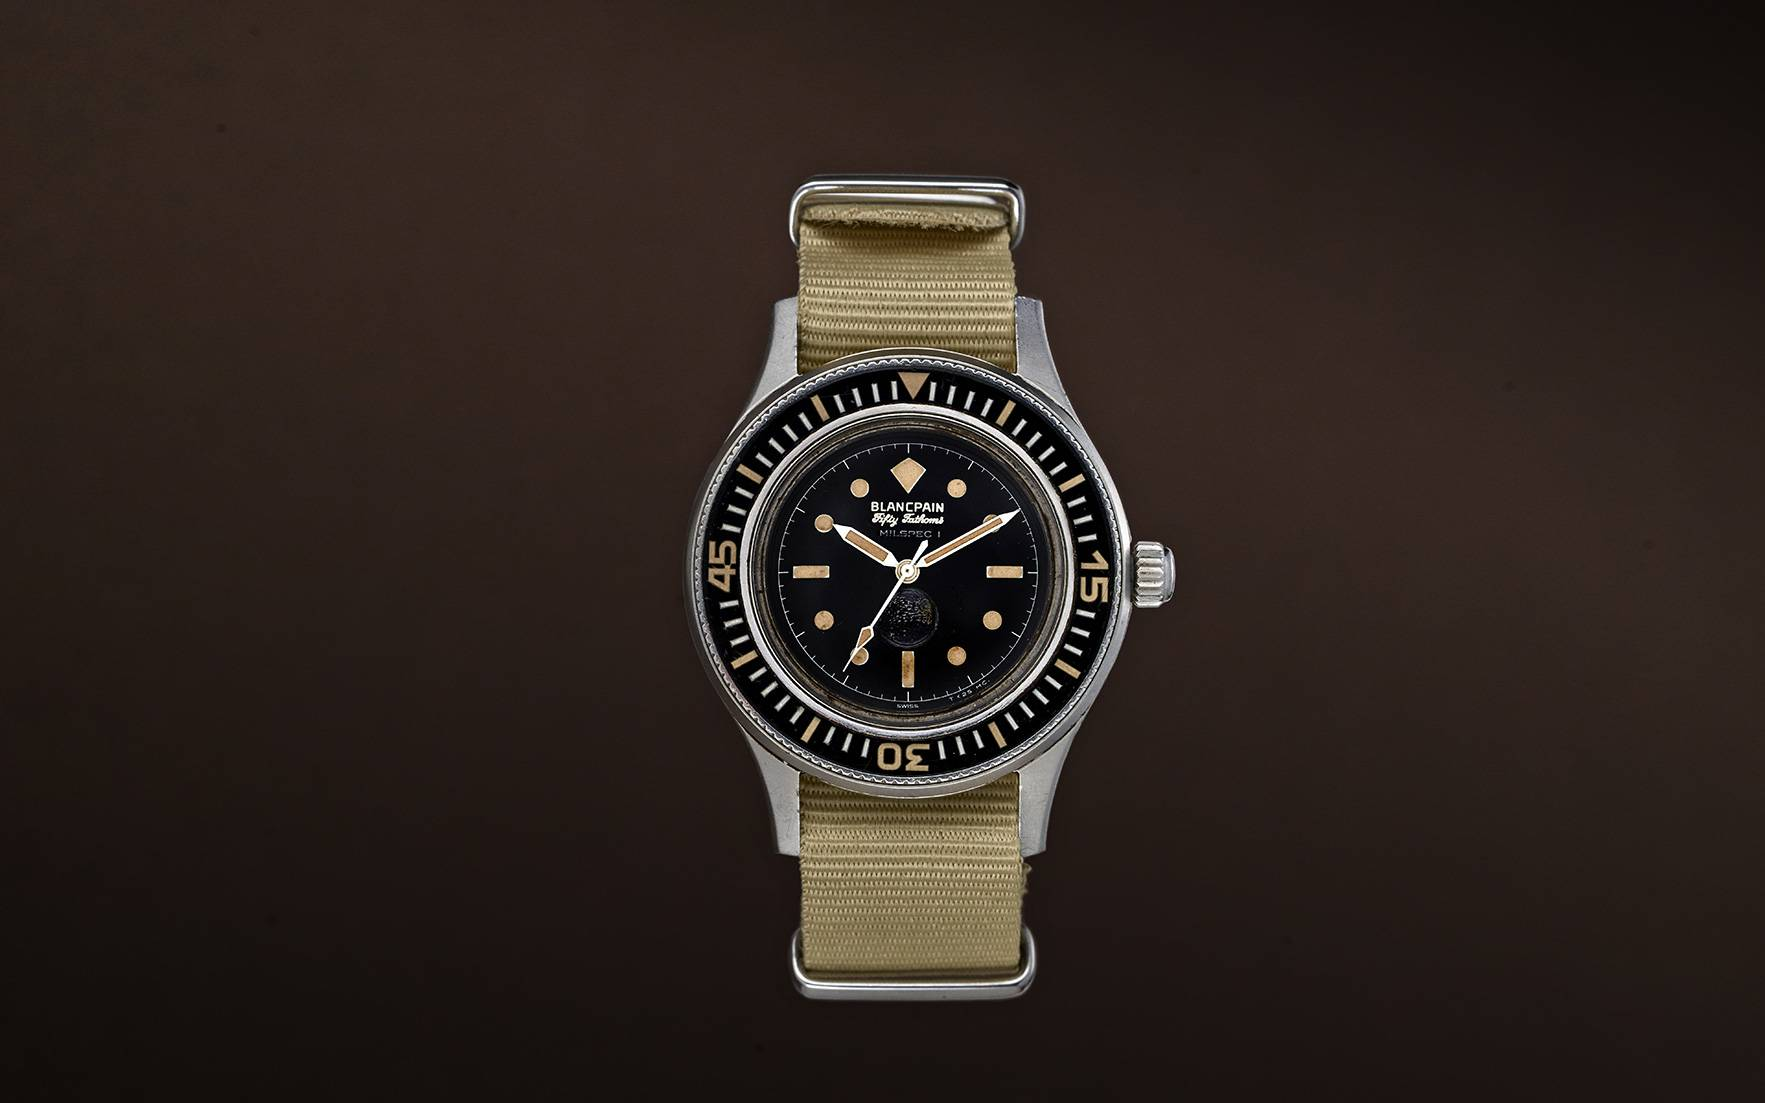 The Blancpain Fifty Fathoms Mi